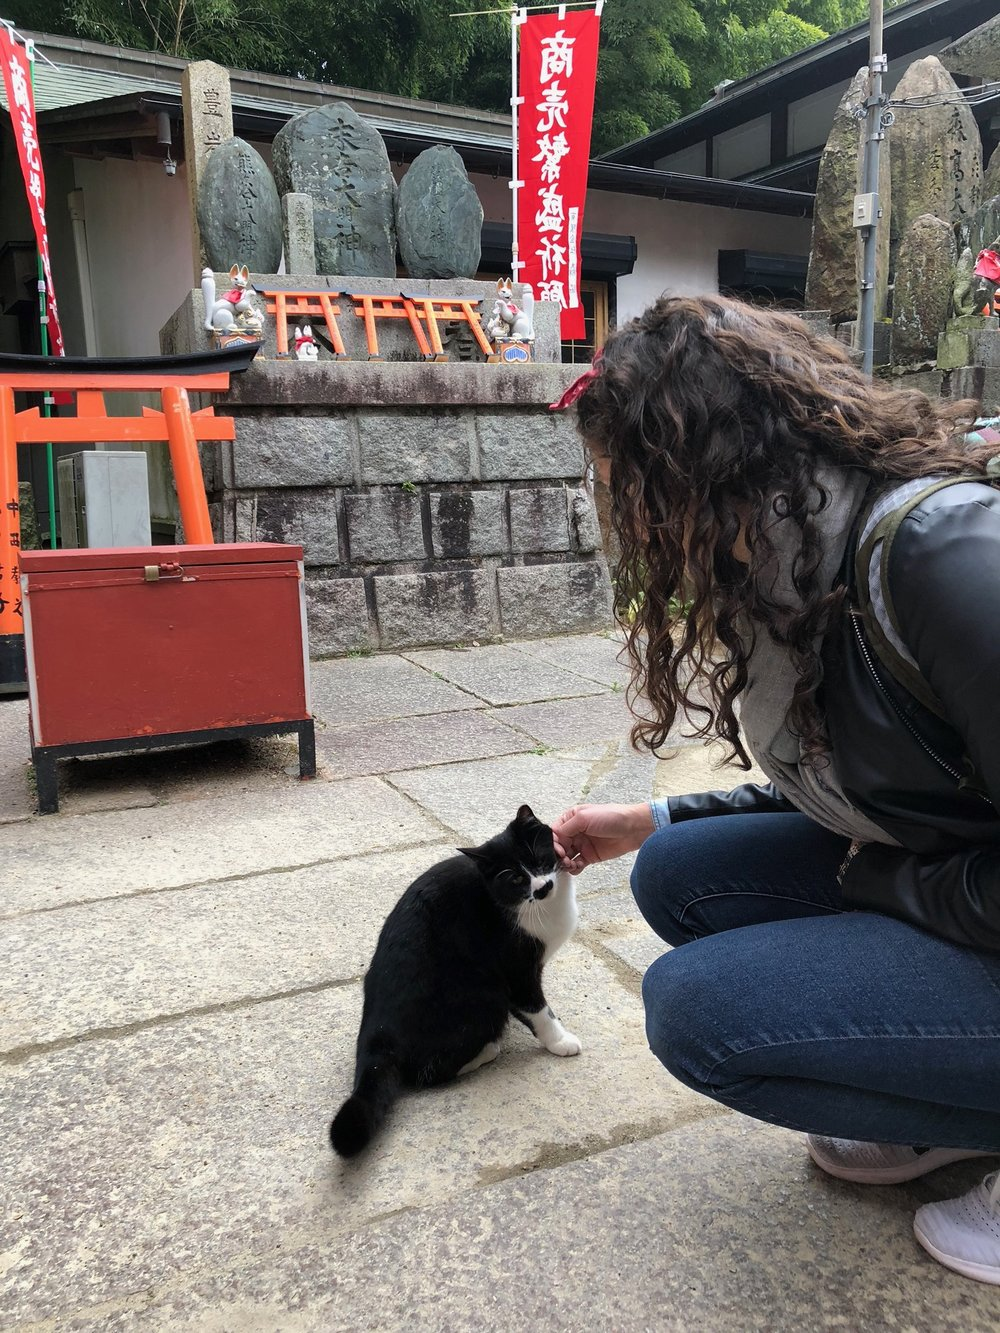 While we were looping back down the mountain, we spotted this little furry friend who belonged to one of the shopkeepers along the path. After a full week away from our girl Toki, we were happy to give this guy some love.